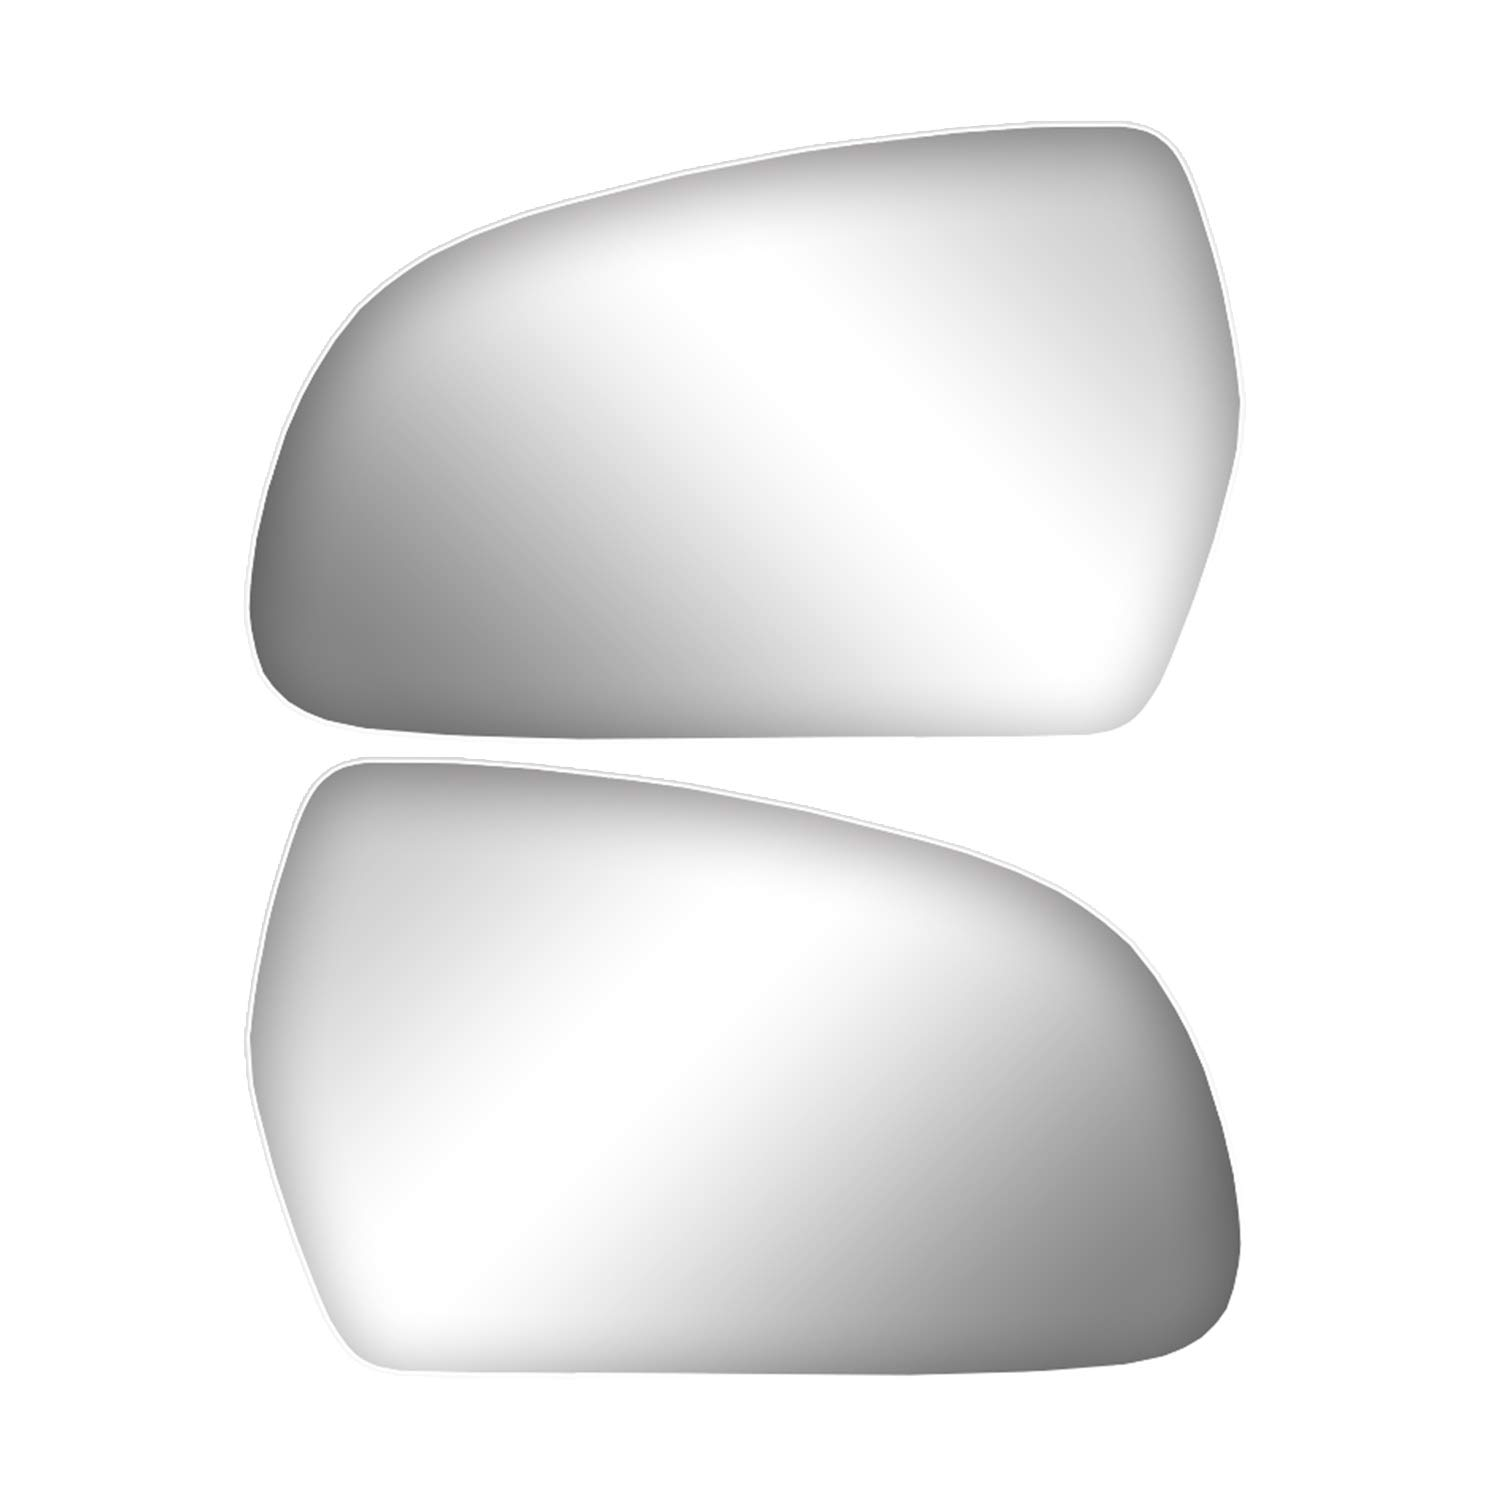 BPW419 Side Mirror Wide Glass For Audi A4 B8 2009 Left And Right 1set Brotherp